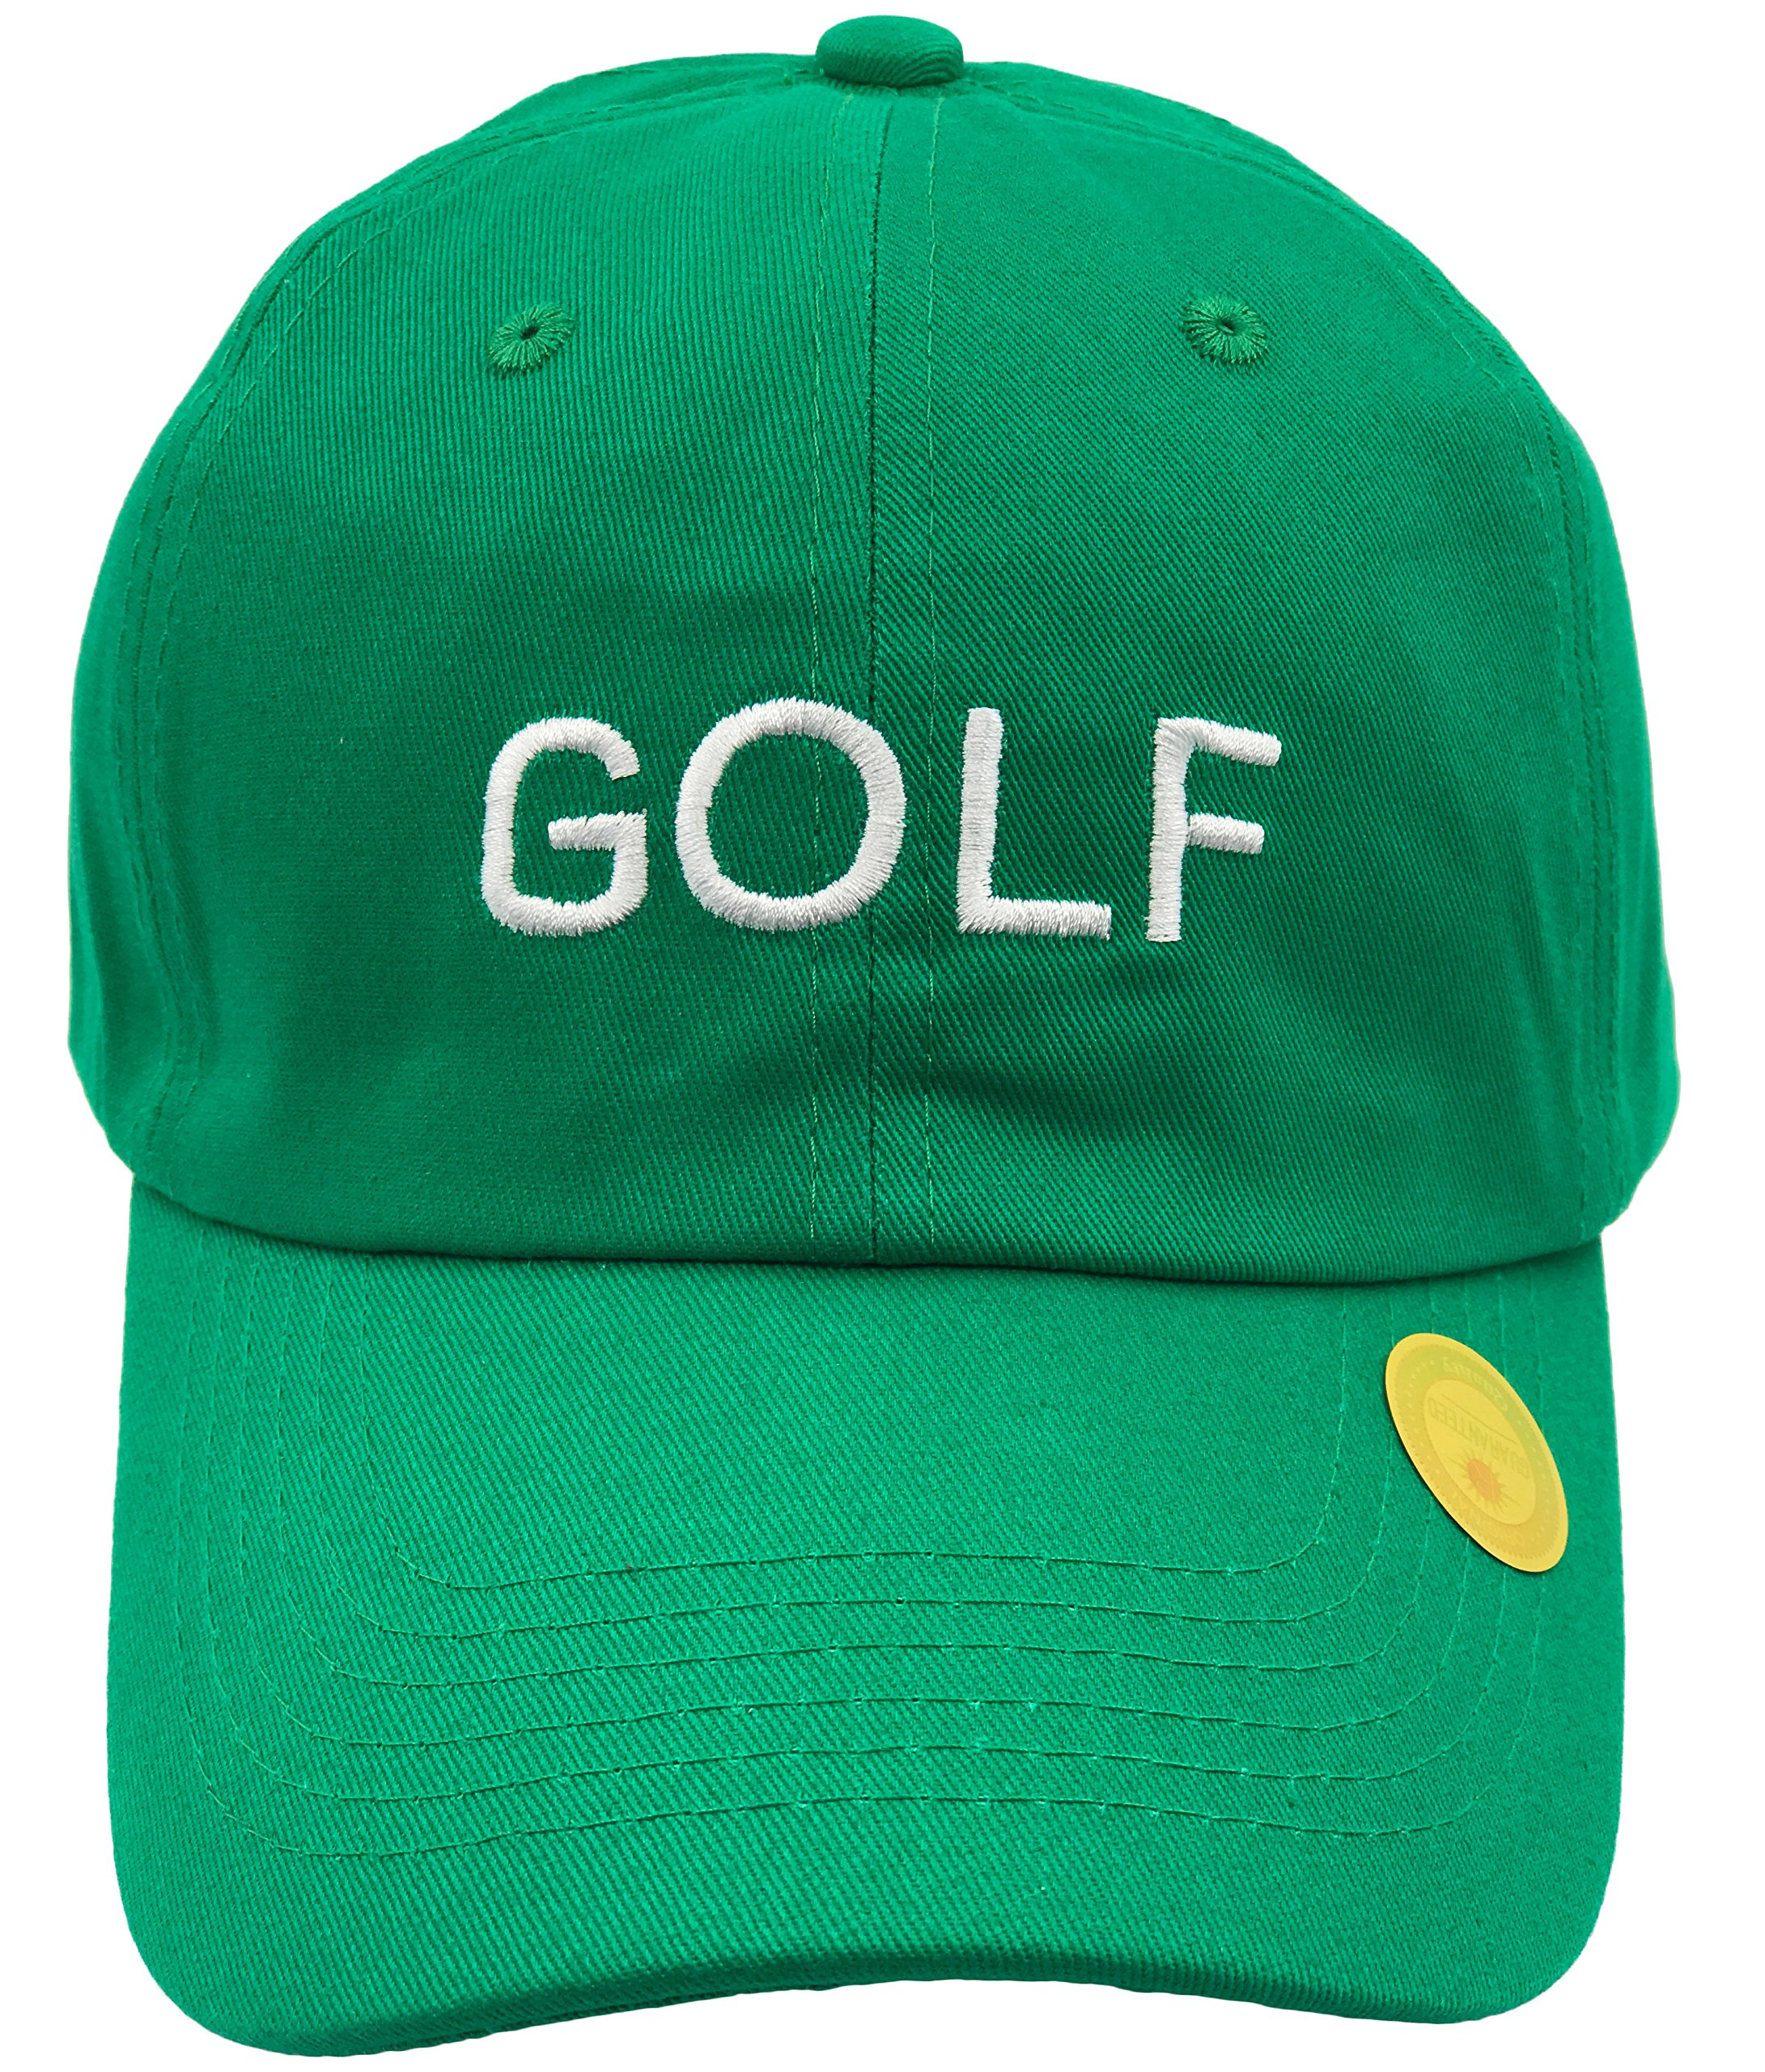 862e8fe6239b Galleon - Golf Hat Dad Hat Cap Wang Odd Future Wolf Gang Tyler The Creator  Embroidered (Green)